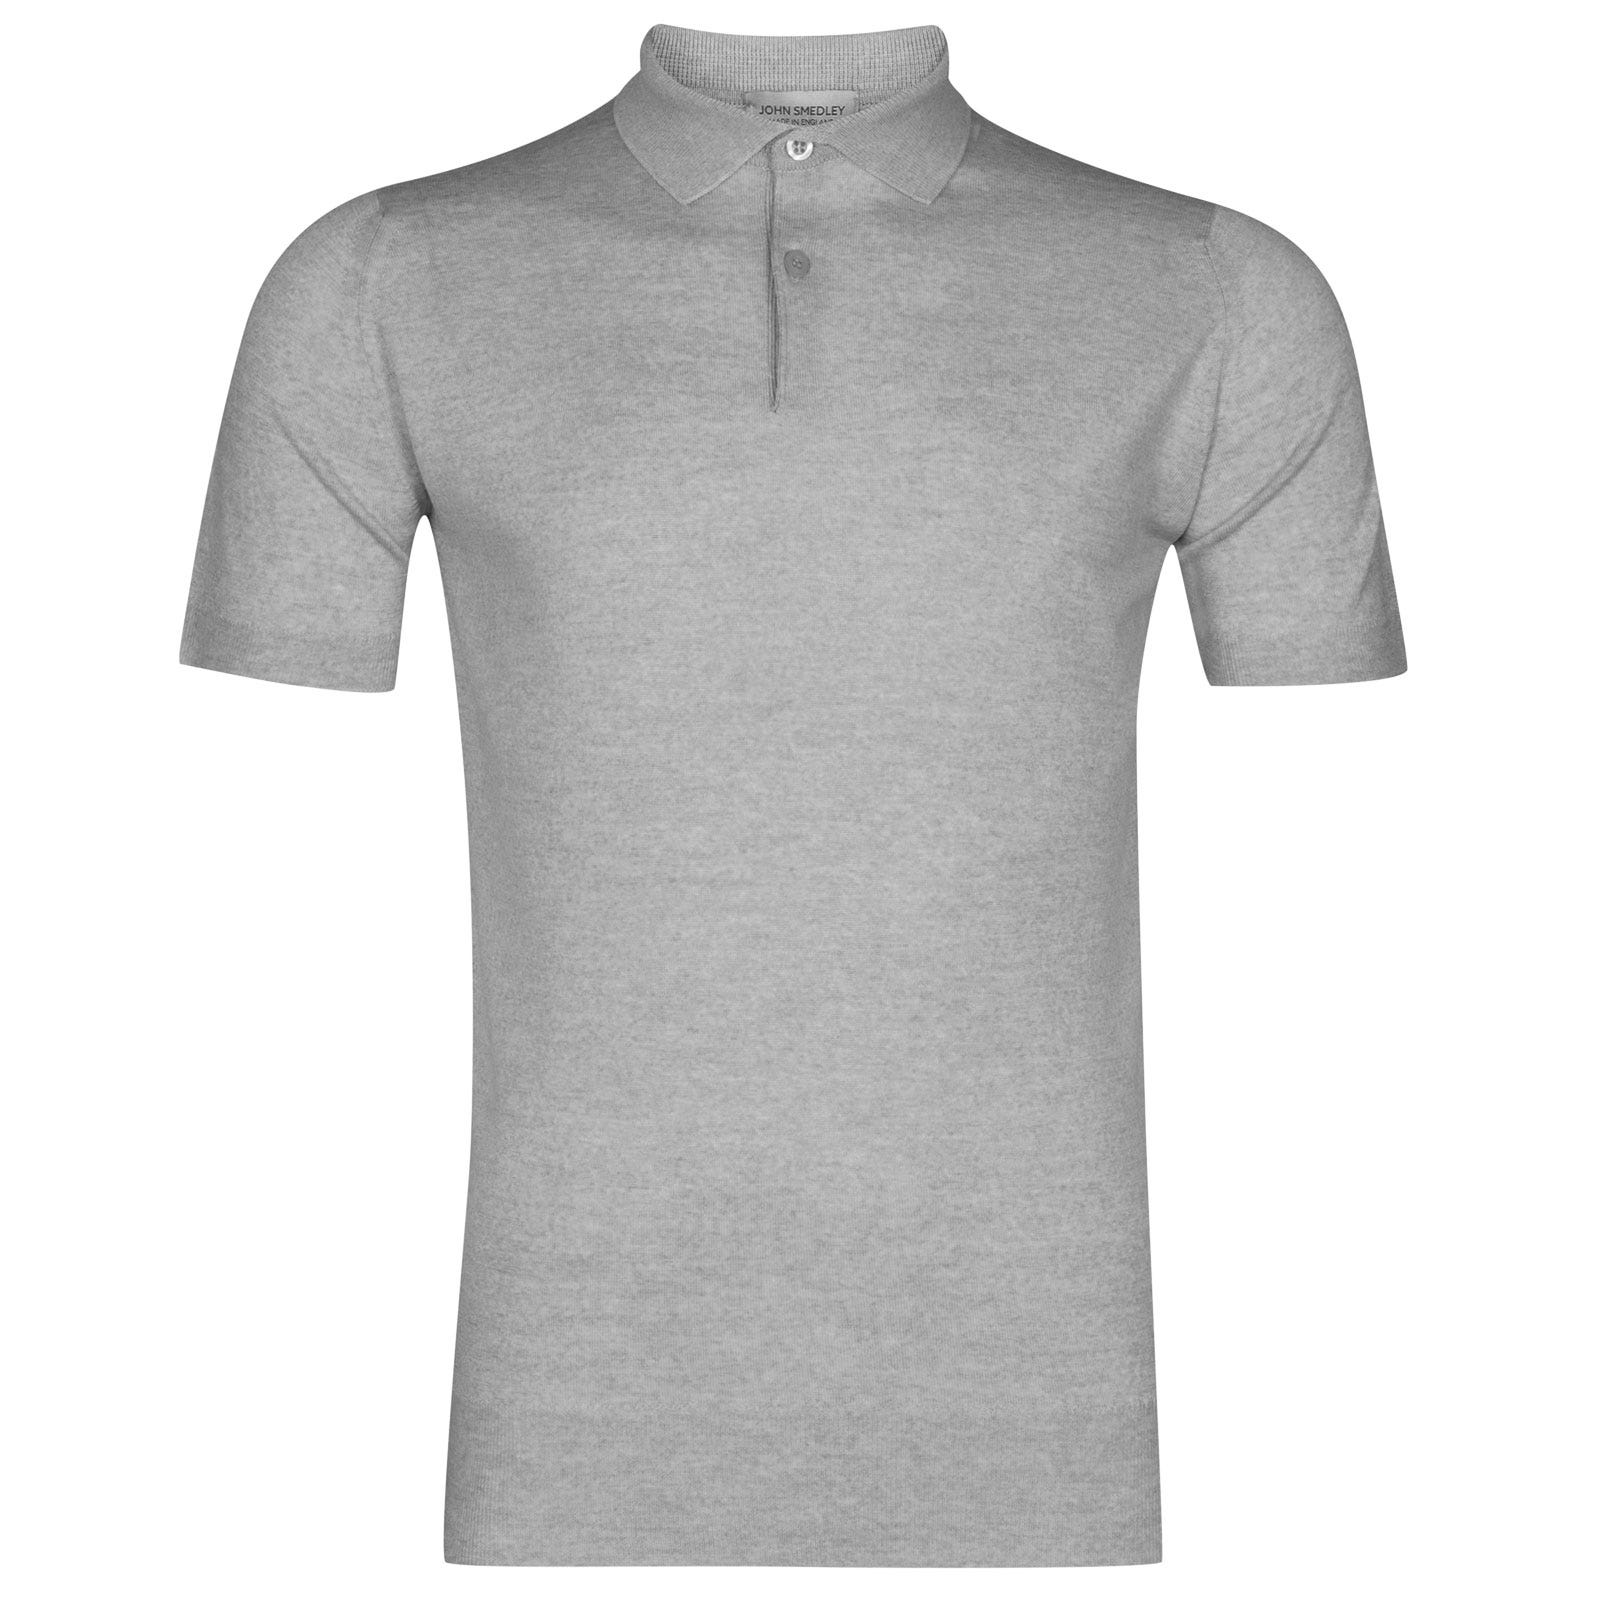 John Smedley payton Merino Wool Shirt in Bardot Grey-XL